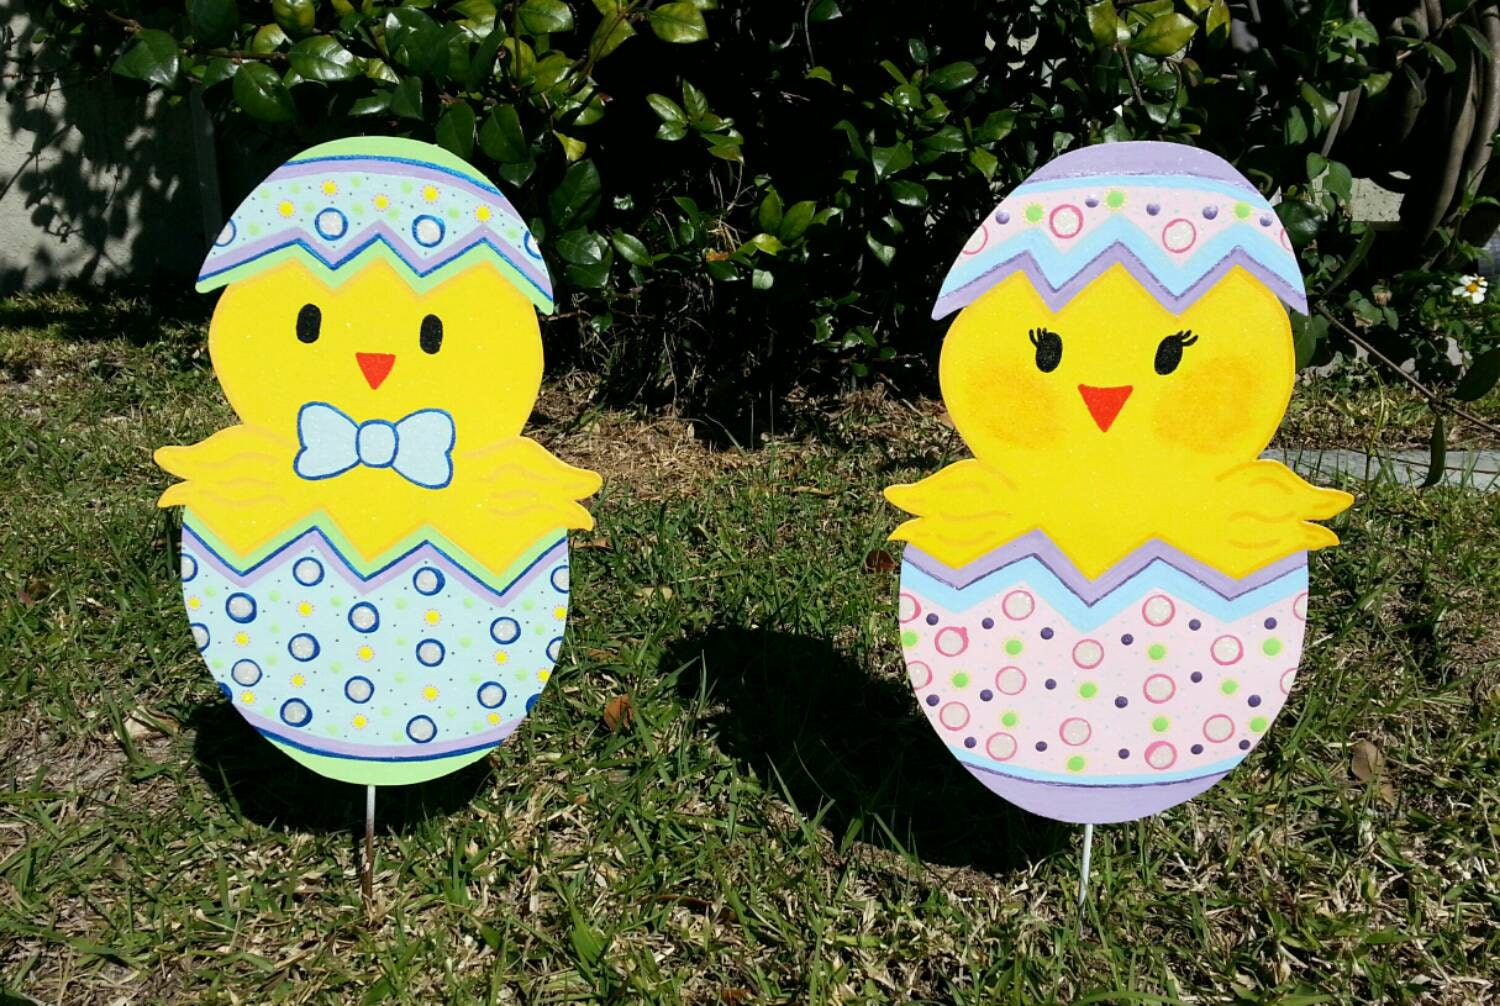 Easter Yard Decorations Easter Chick Easter Metal Yard Art Outdoor Easter Decor Easter Decorations Garden Decor Metal Yard Art Easter Yard